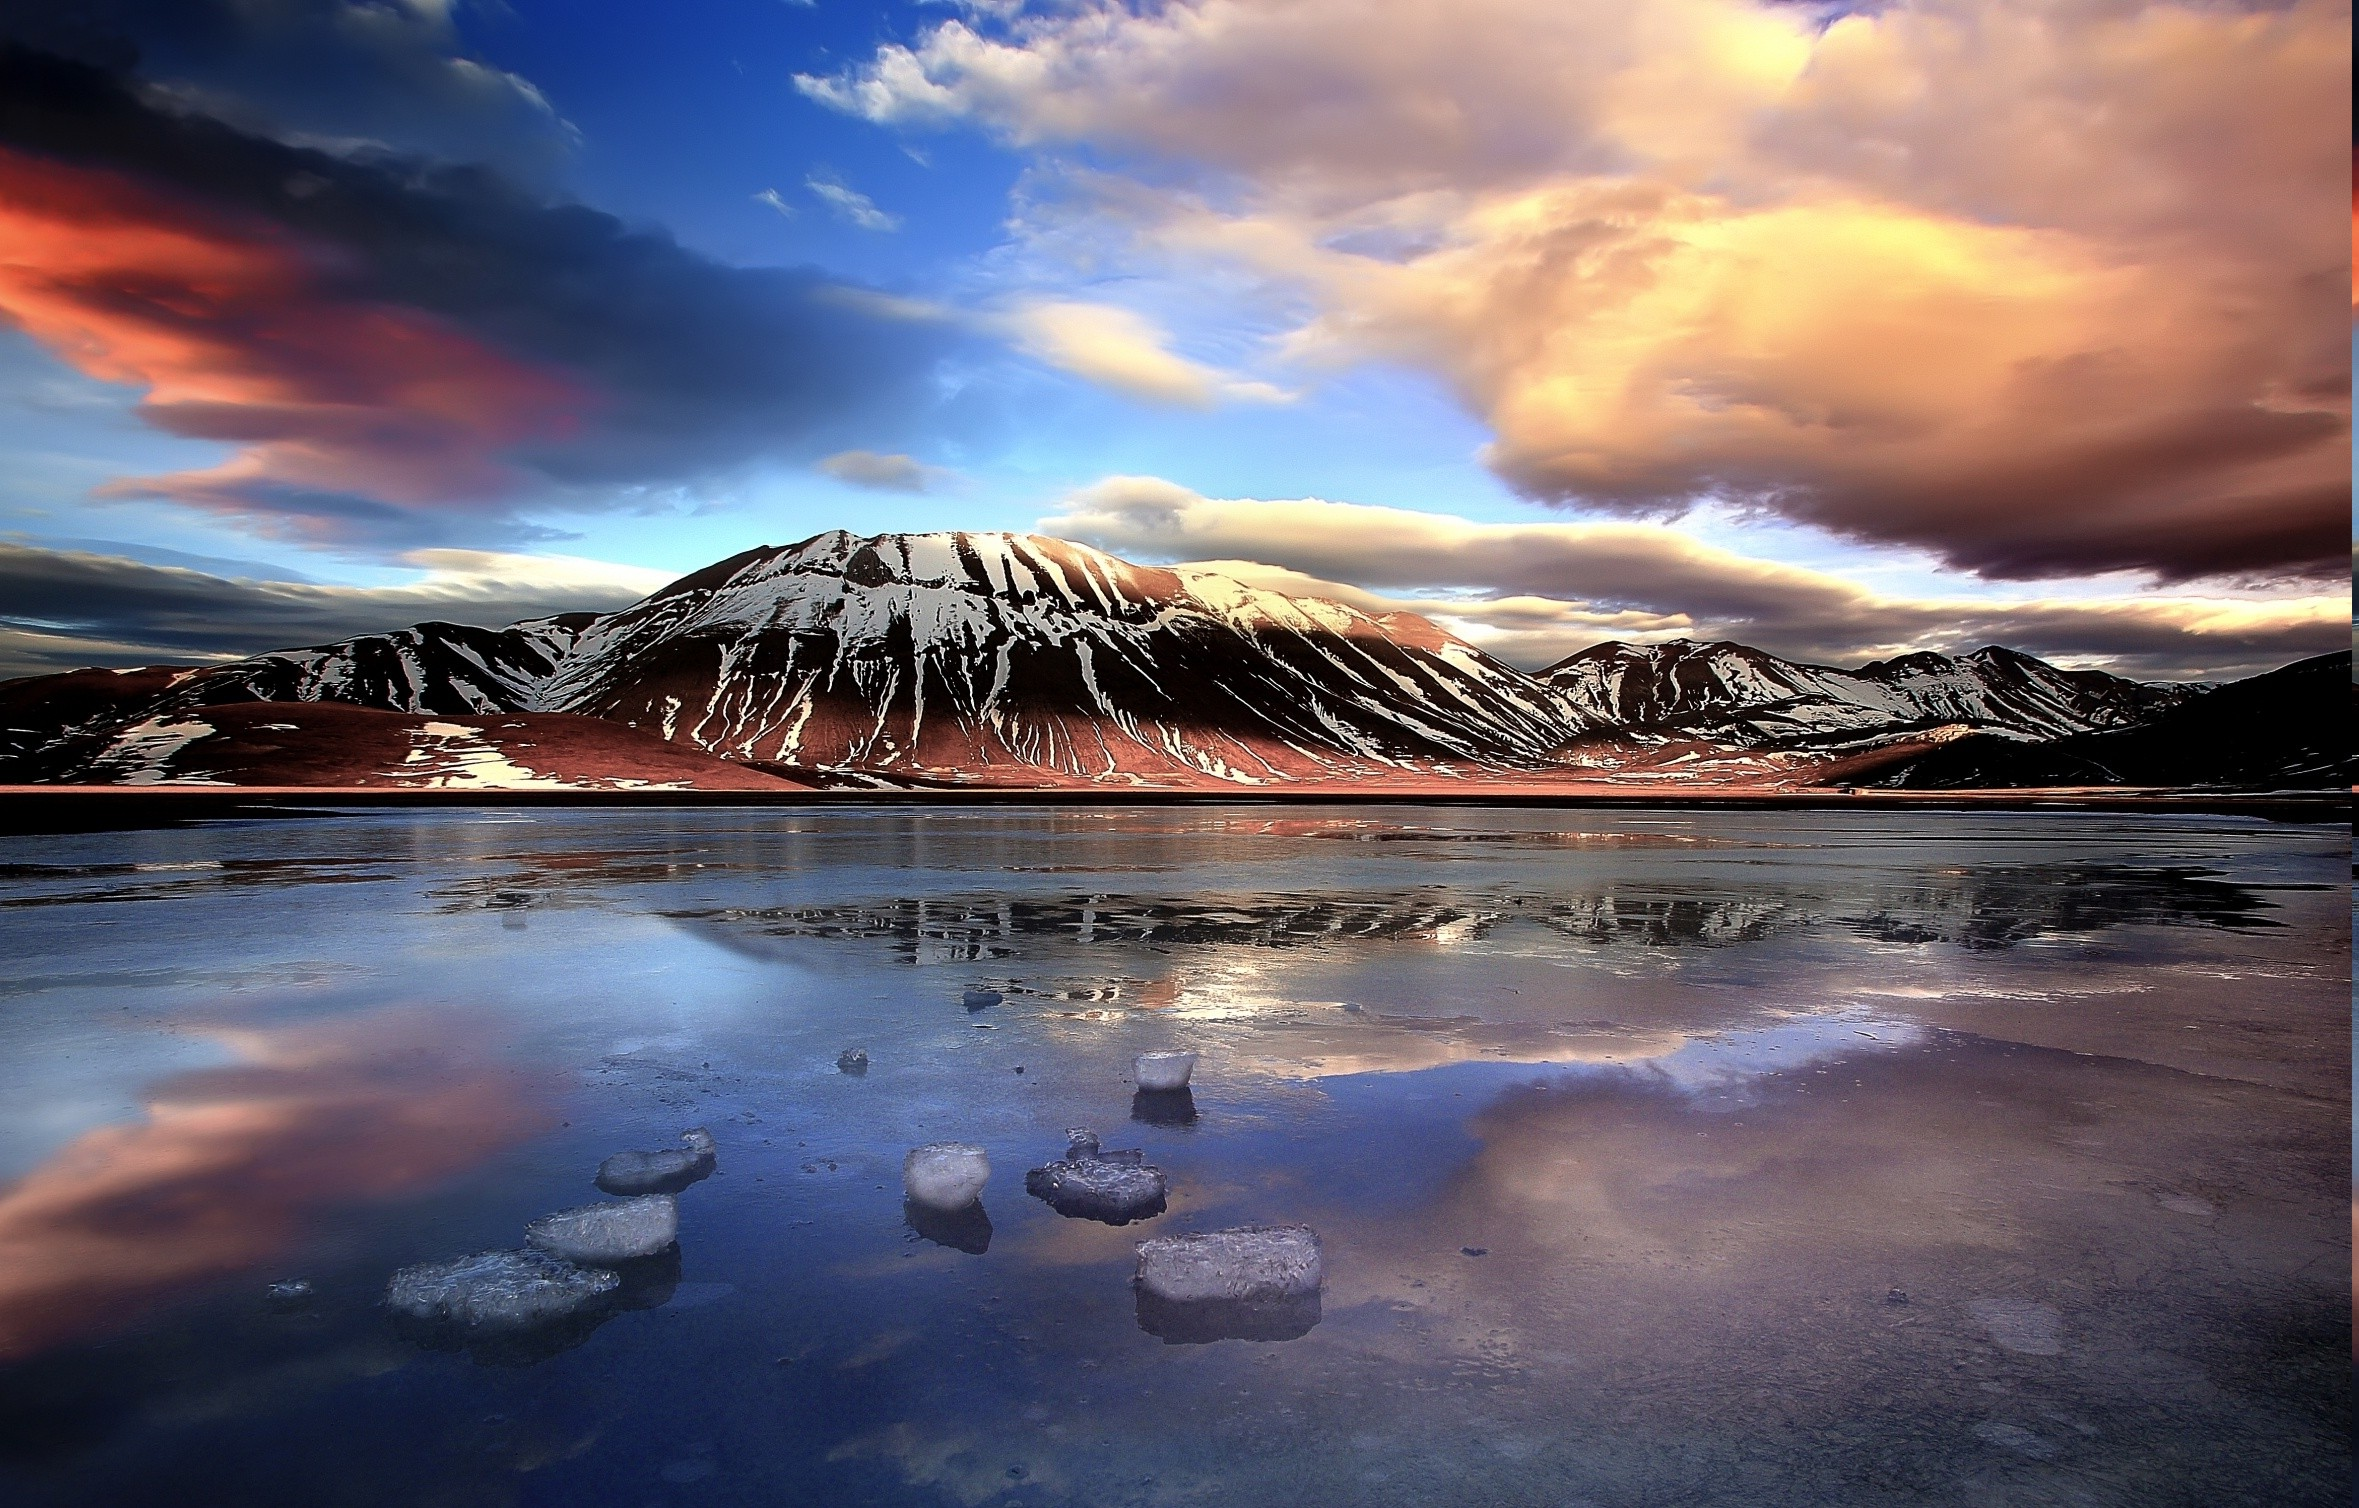 Full Hd Wallpapers Sunsets Italy Mountain Clouds Lake Winter Ice Sunset Snowy